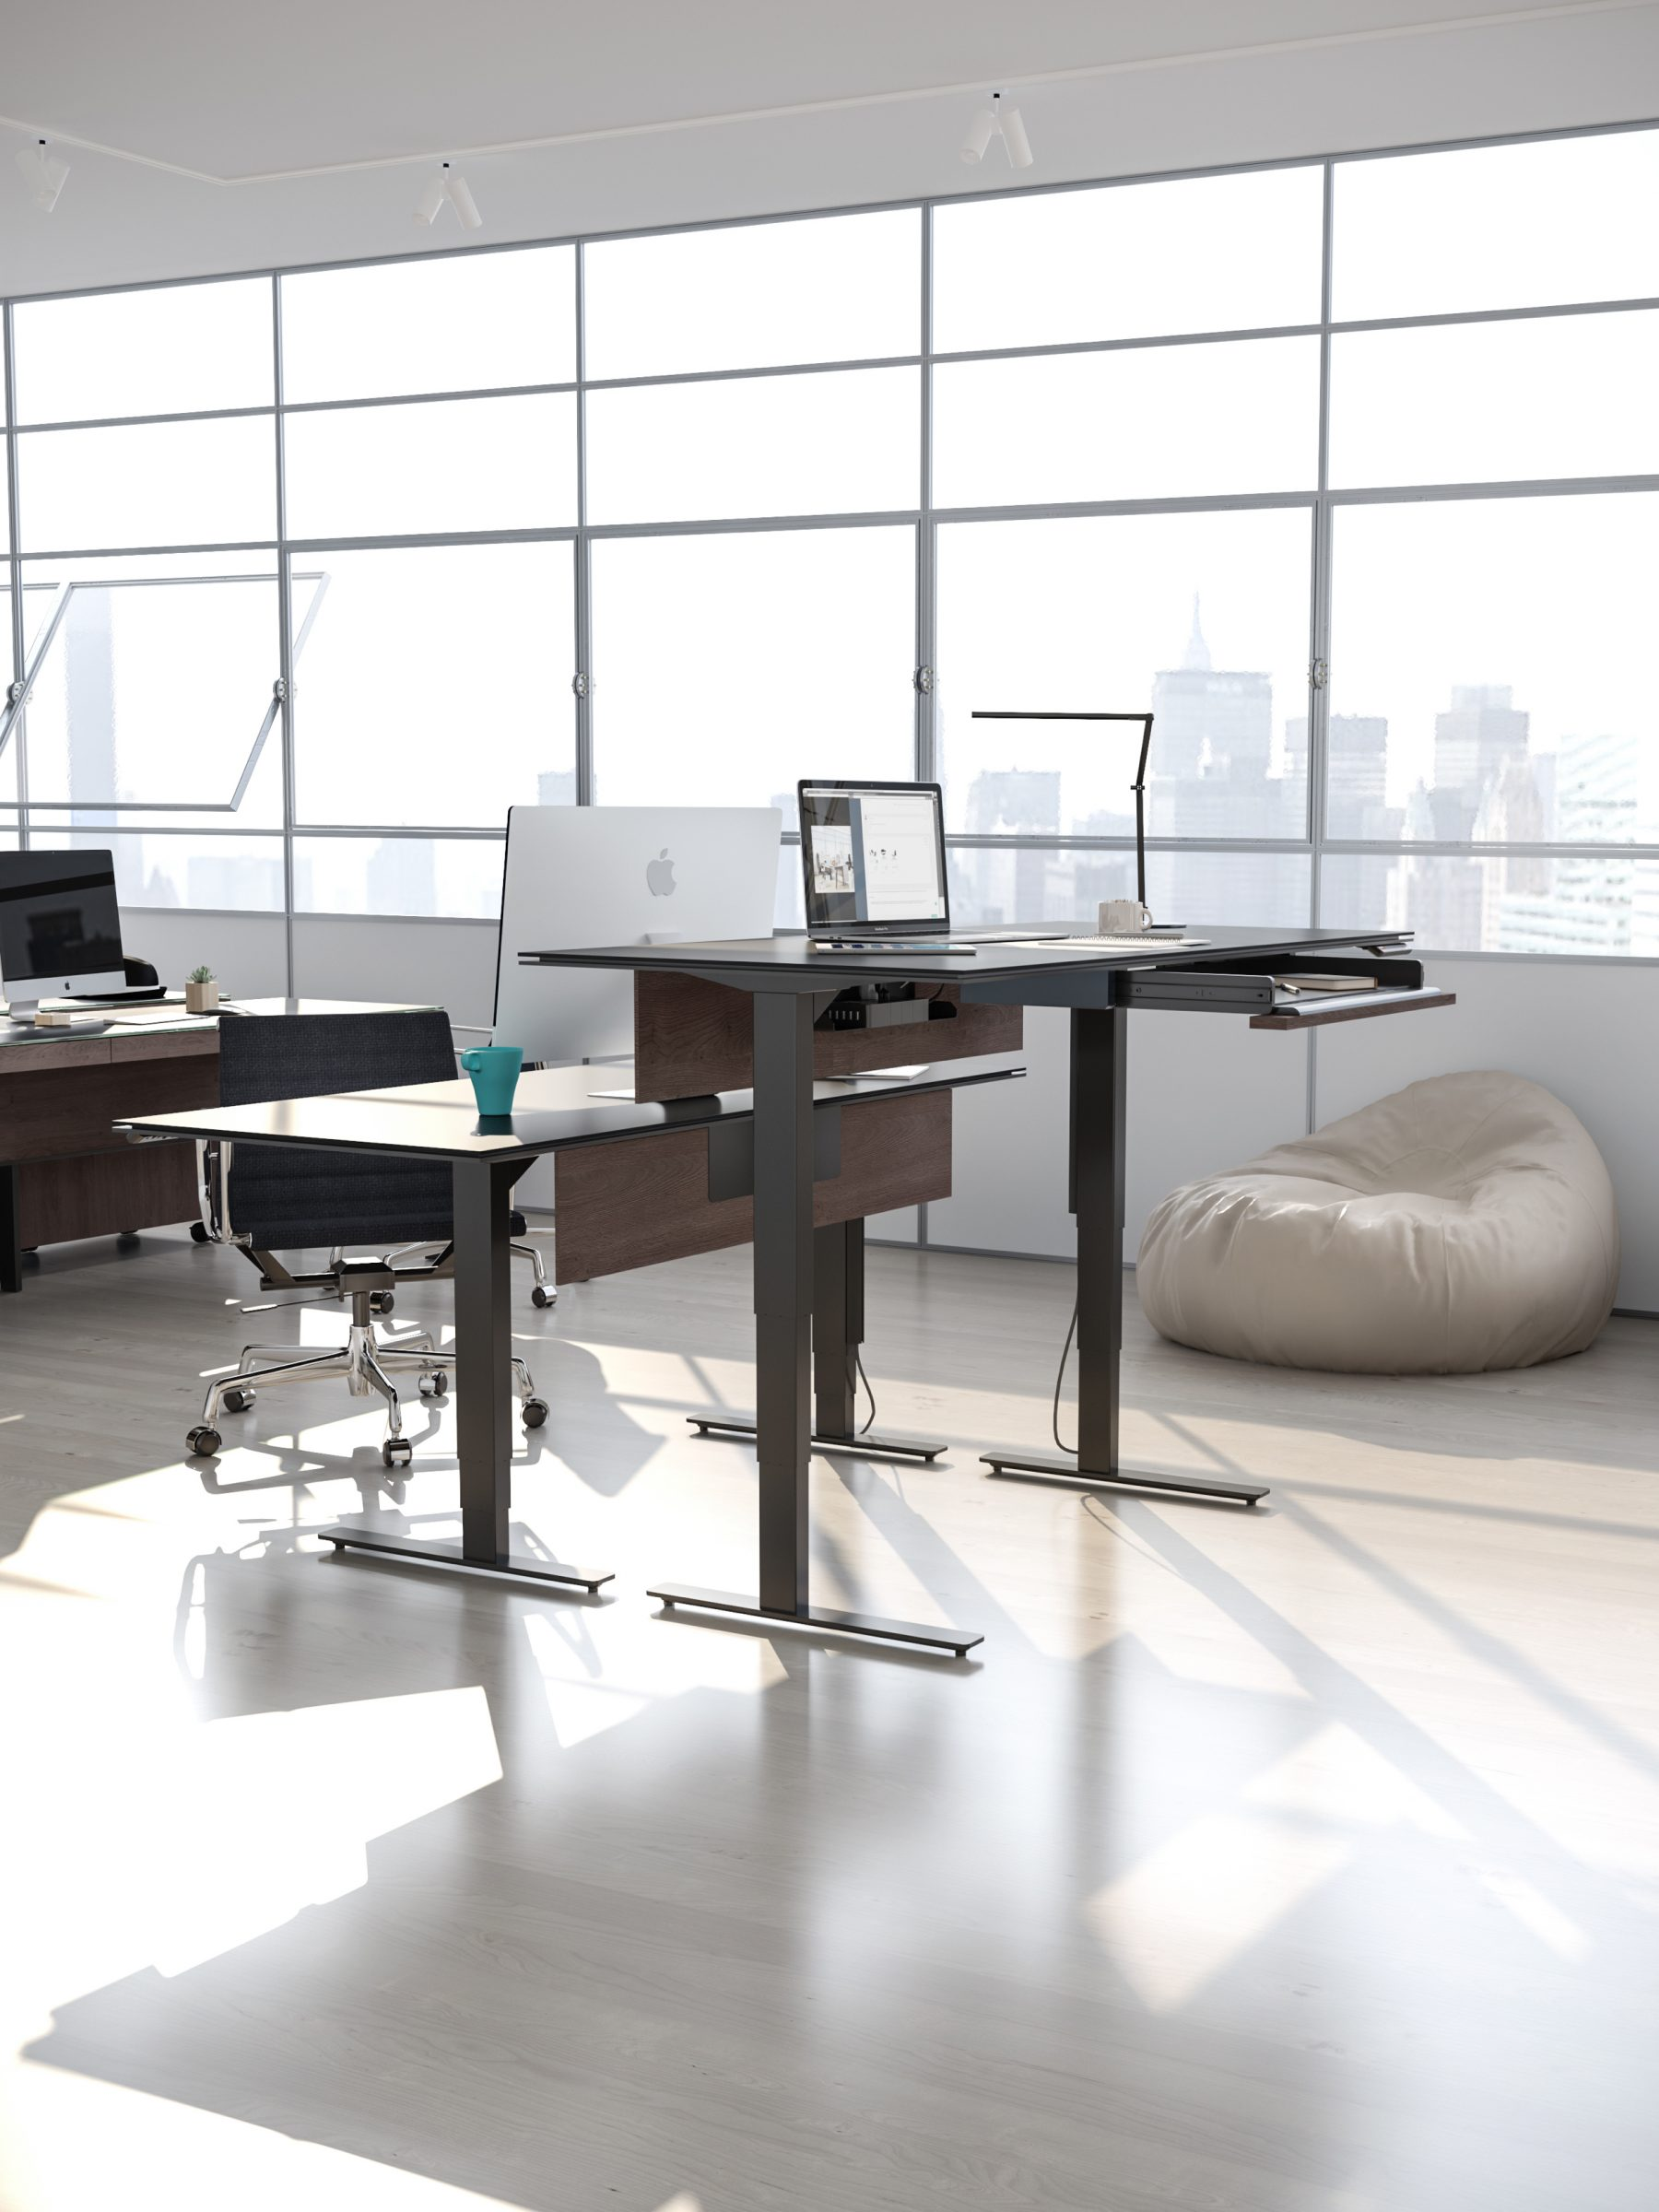 stance-lift-desk-6650-BLK-BDI-height-adjustable-desk-LS3A